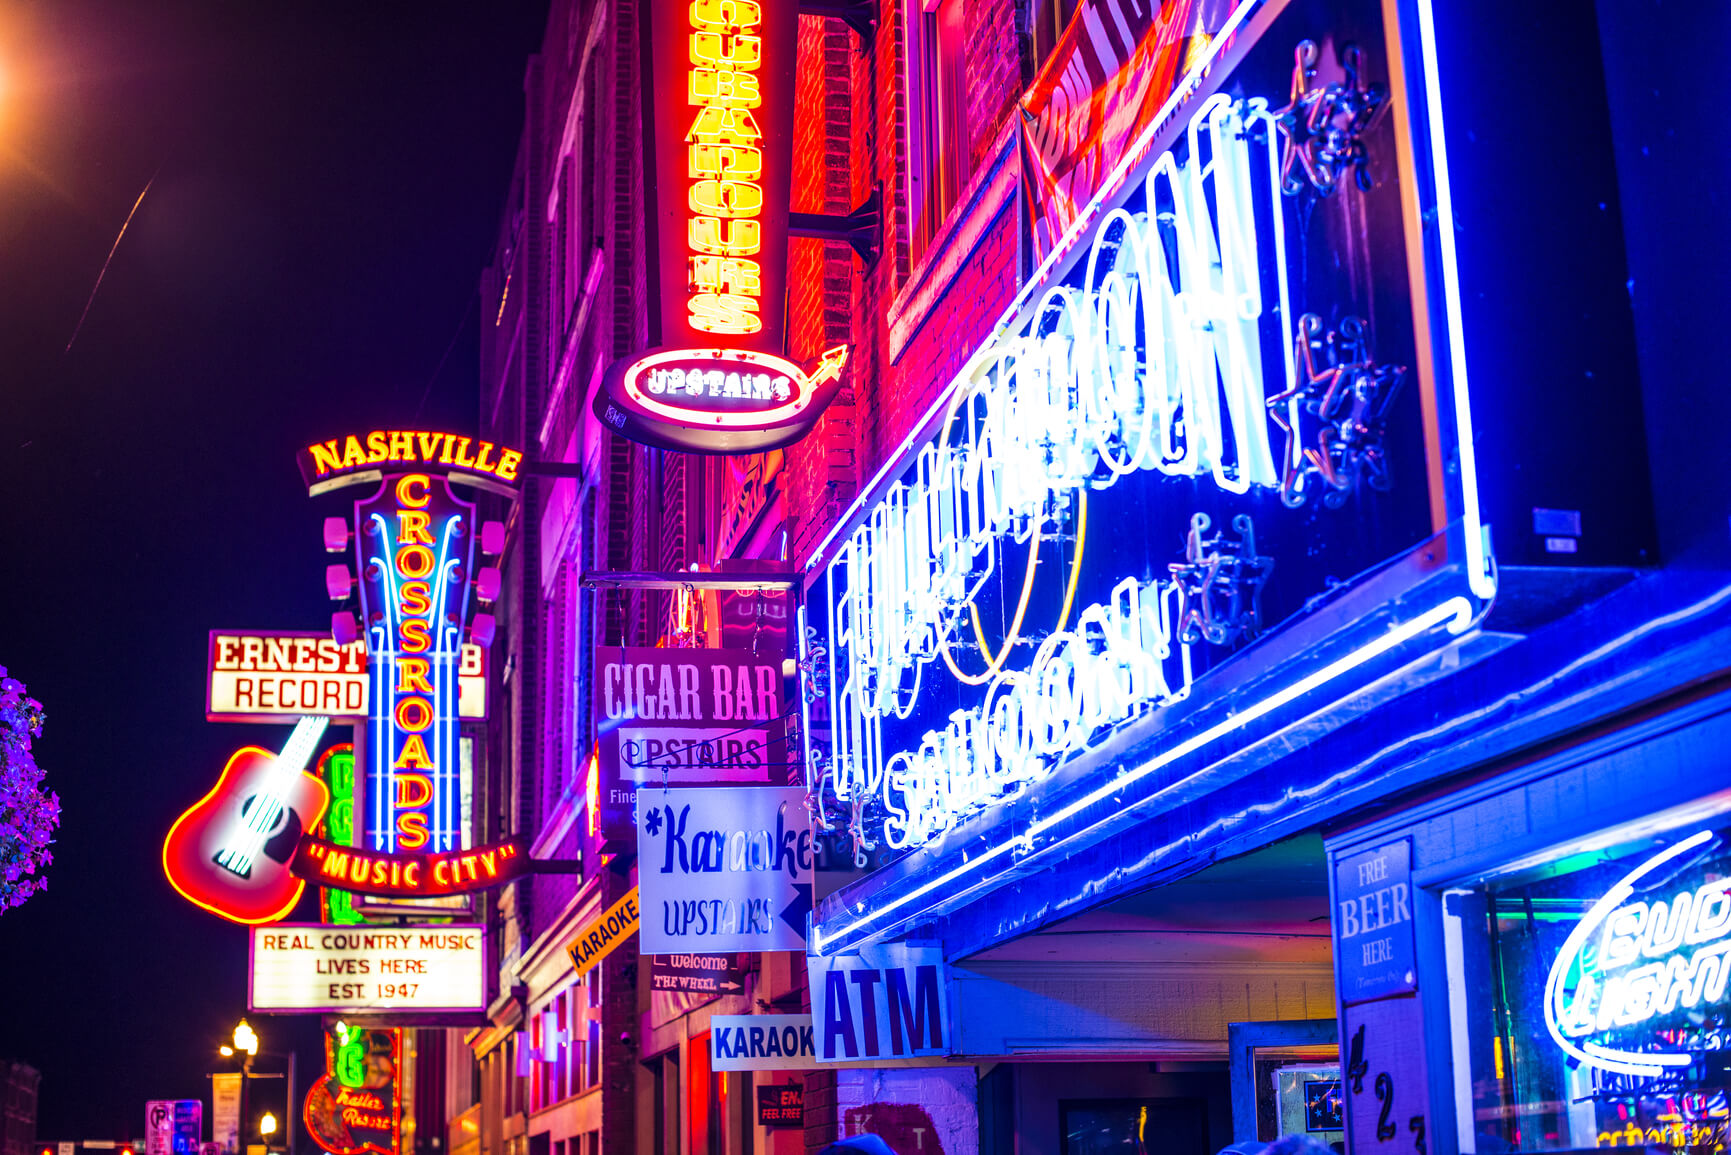 SUMMER: San Jose, California to Nashville (& vice versa) for only $147 roundtrip (Nov-Aug dates)